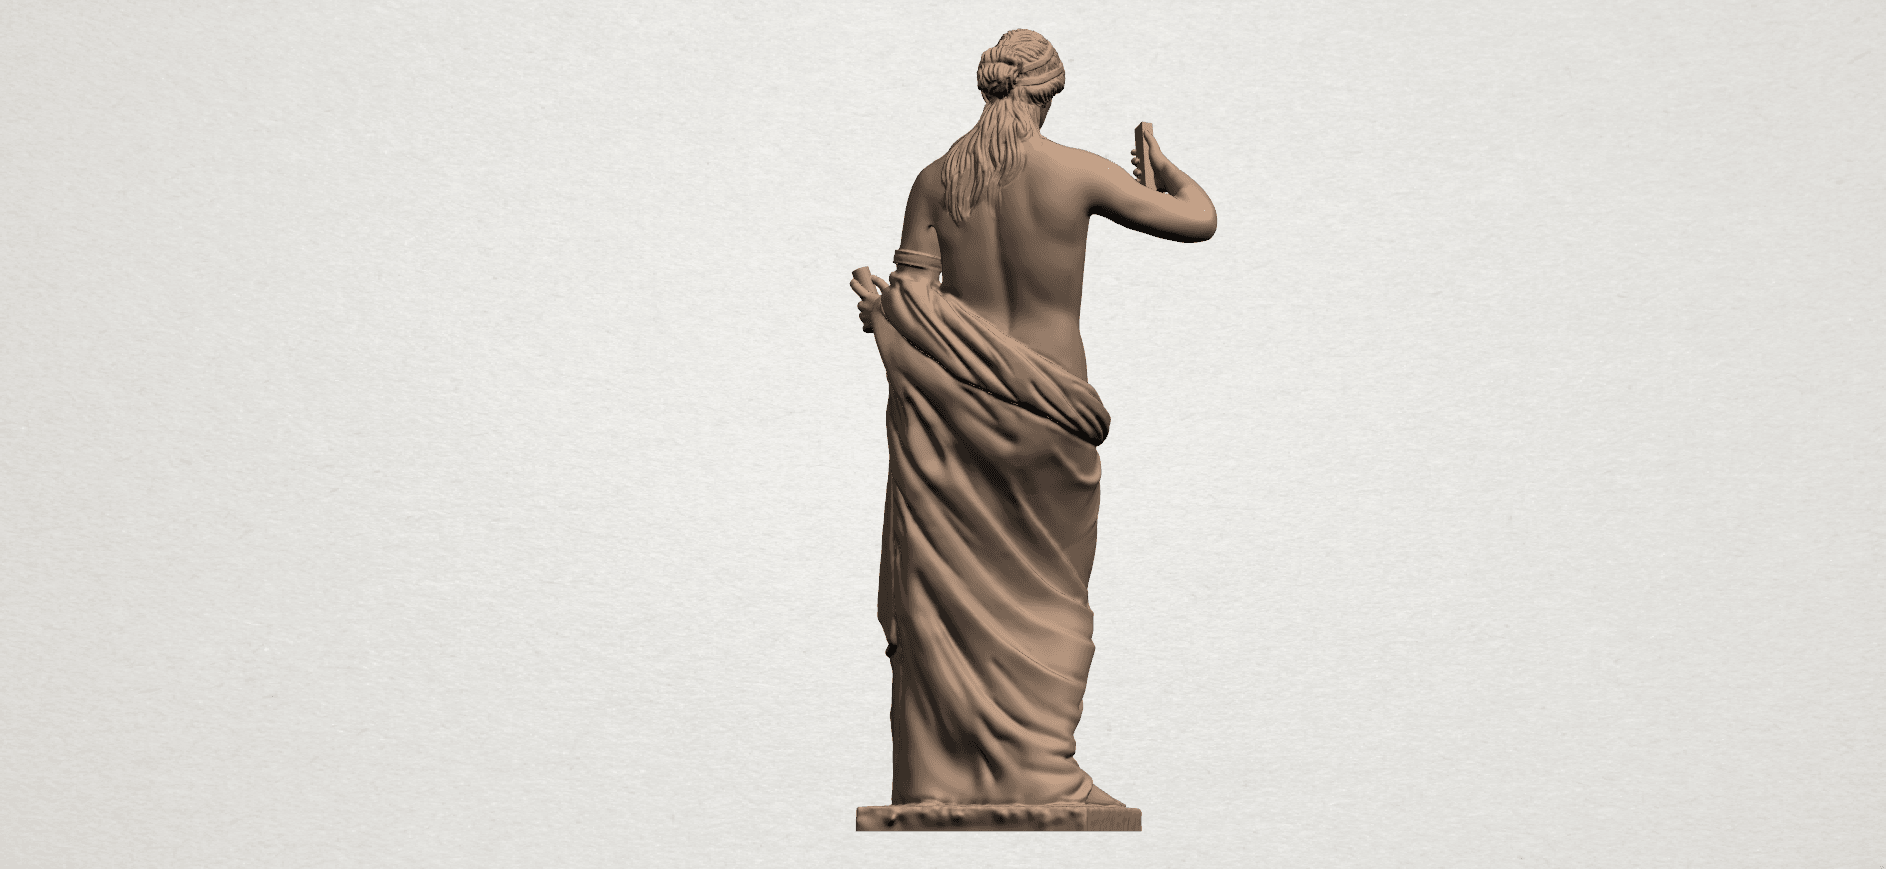 Naked Girl (xi) A05.png Download free STL file Naked Girl 11 • 3D printable model, GeorgesNikkei